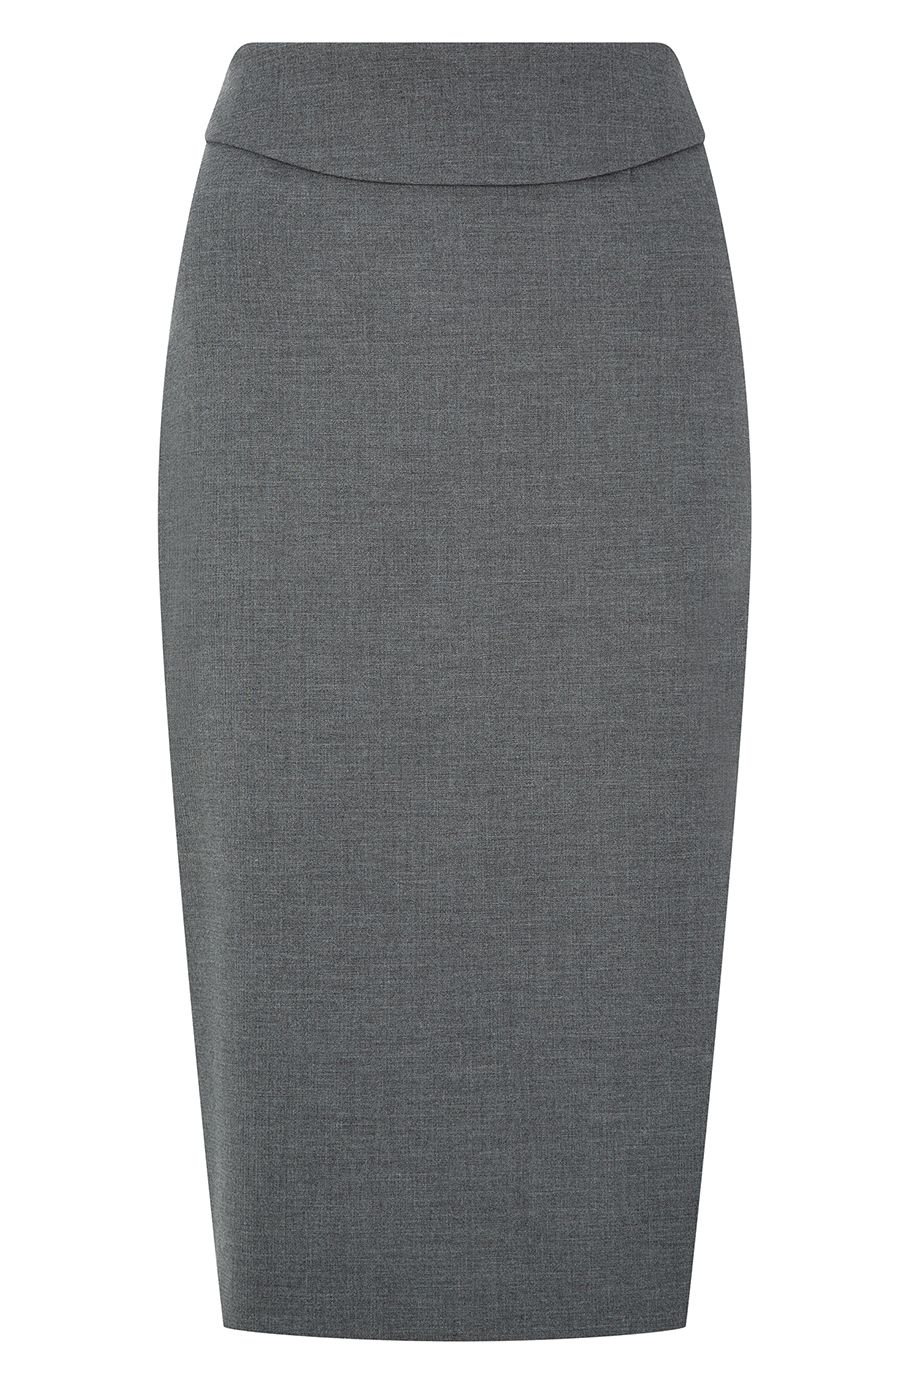 Damsel in a Dress Daxton Skirt, Grey